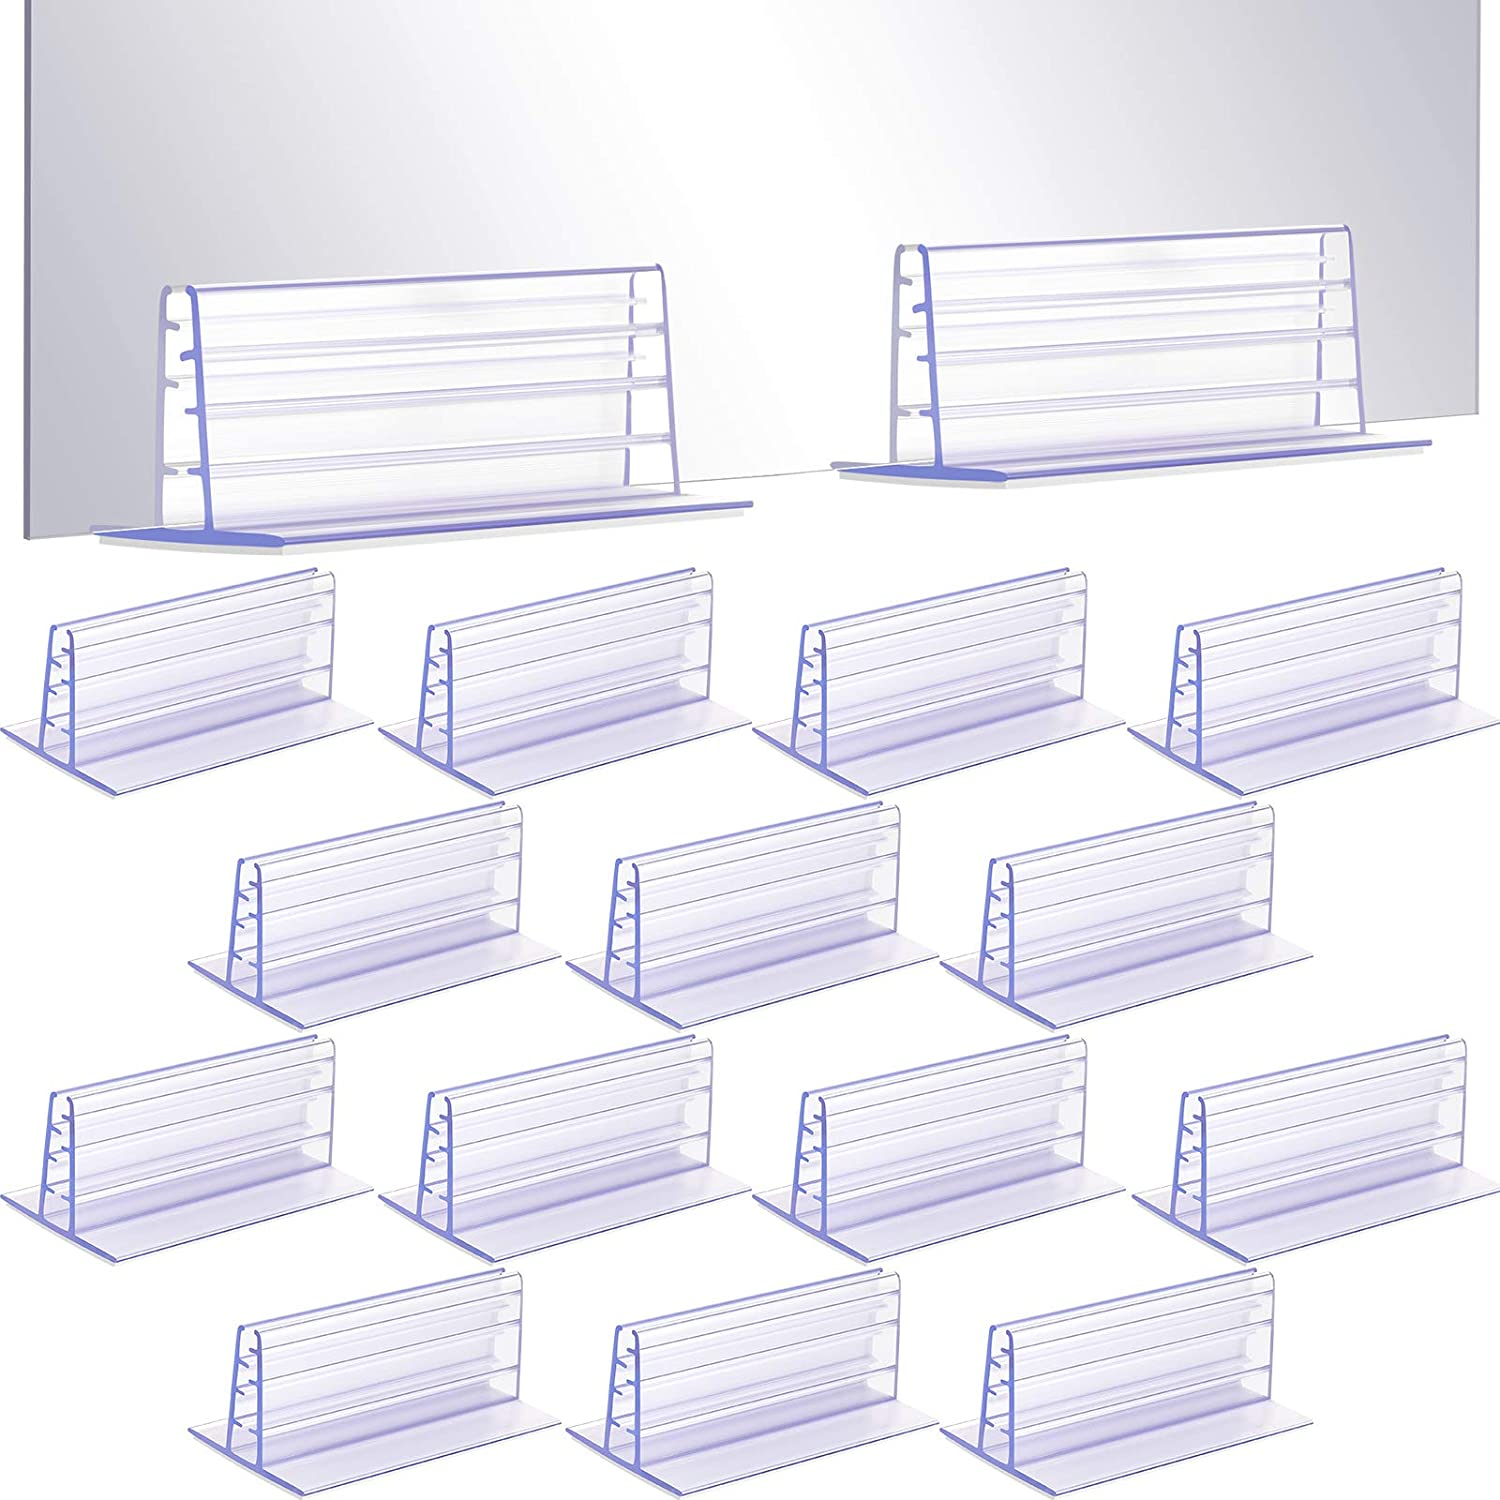 Self Adhesive Sign Holders Sneeze Guard Holders to Fix Acrylic Sheets and Panels, Acrylic Sign Holder, 3 x 1.65 x 1.26 Inches, L x W x H (16 Pieces)